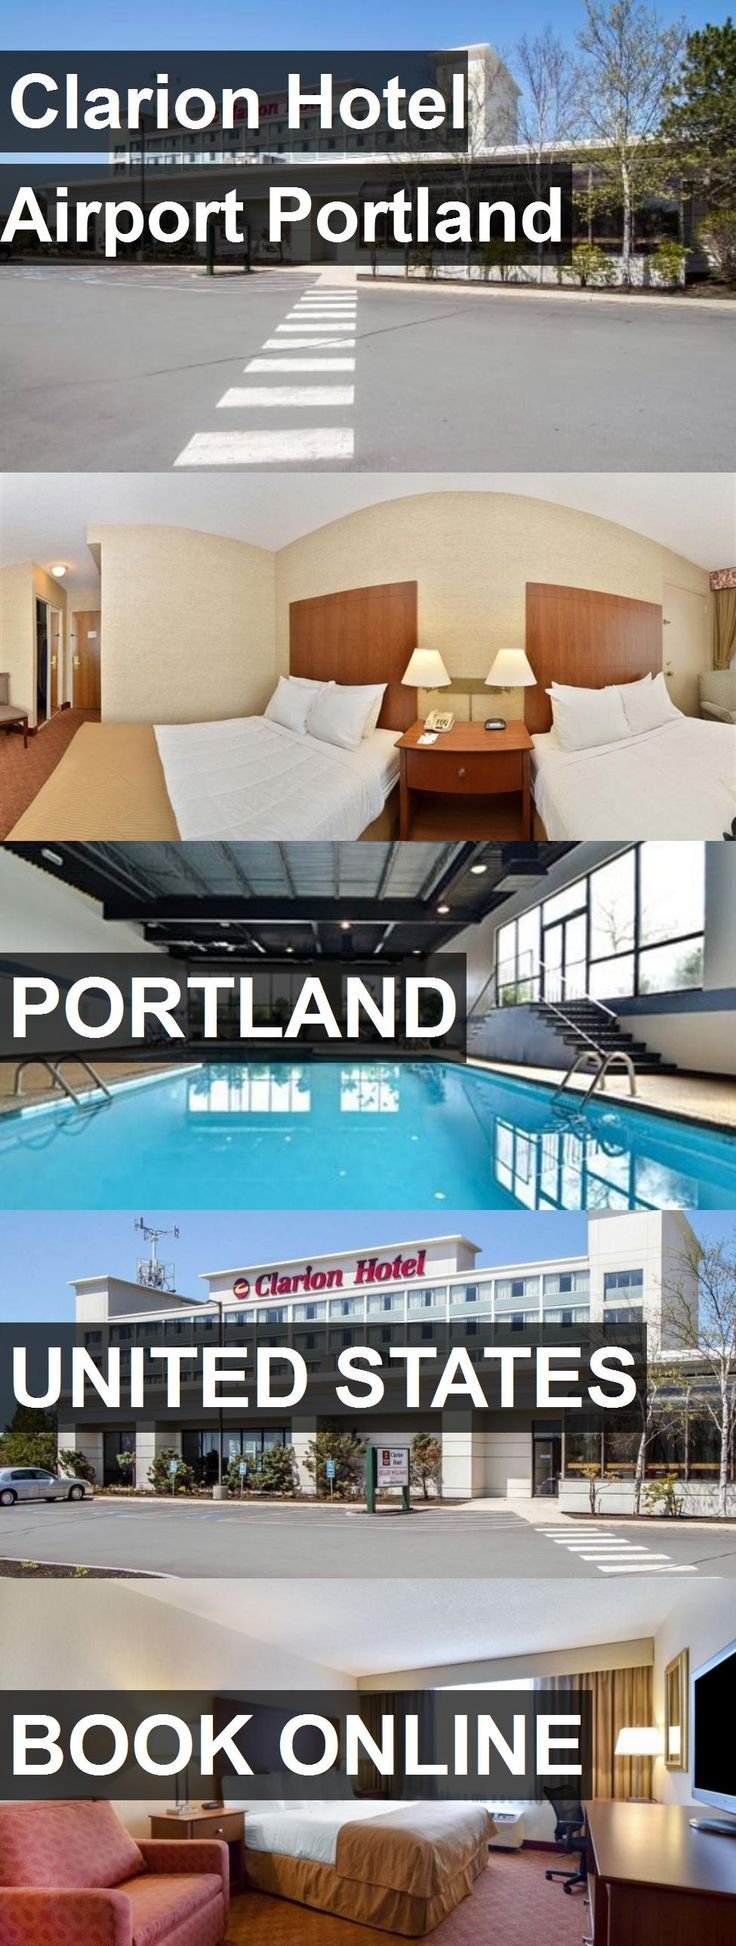 Hotel Clarion Hotel Airport Portland in Portland, United States. For more information, photos, reviews and best prices please follow the link. #UnitedStates #Portland #ClarionHotelAirportPortland #hotel #travel #vacation